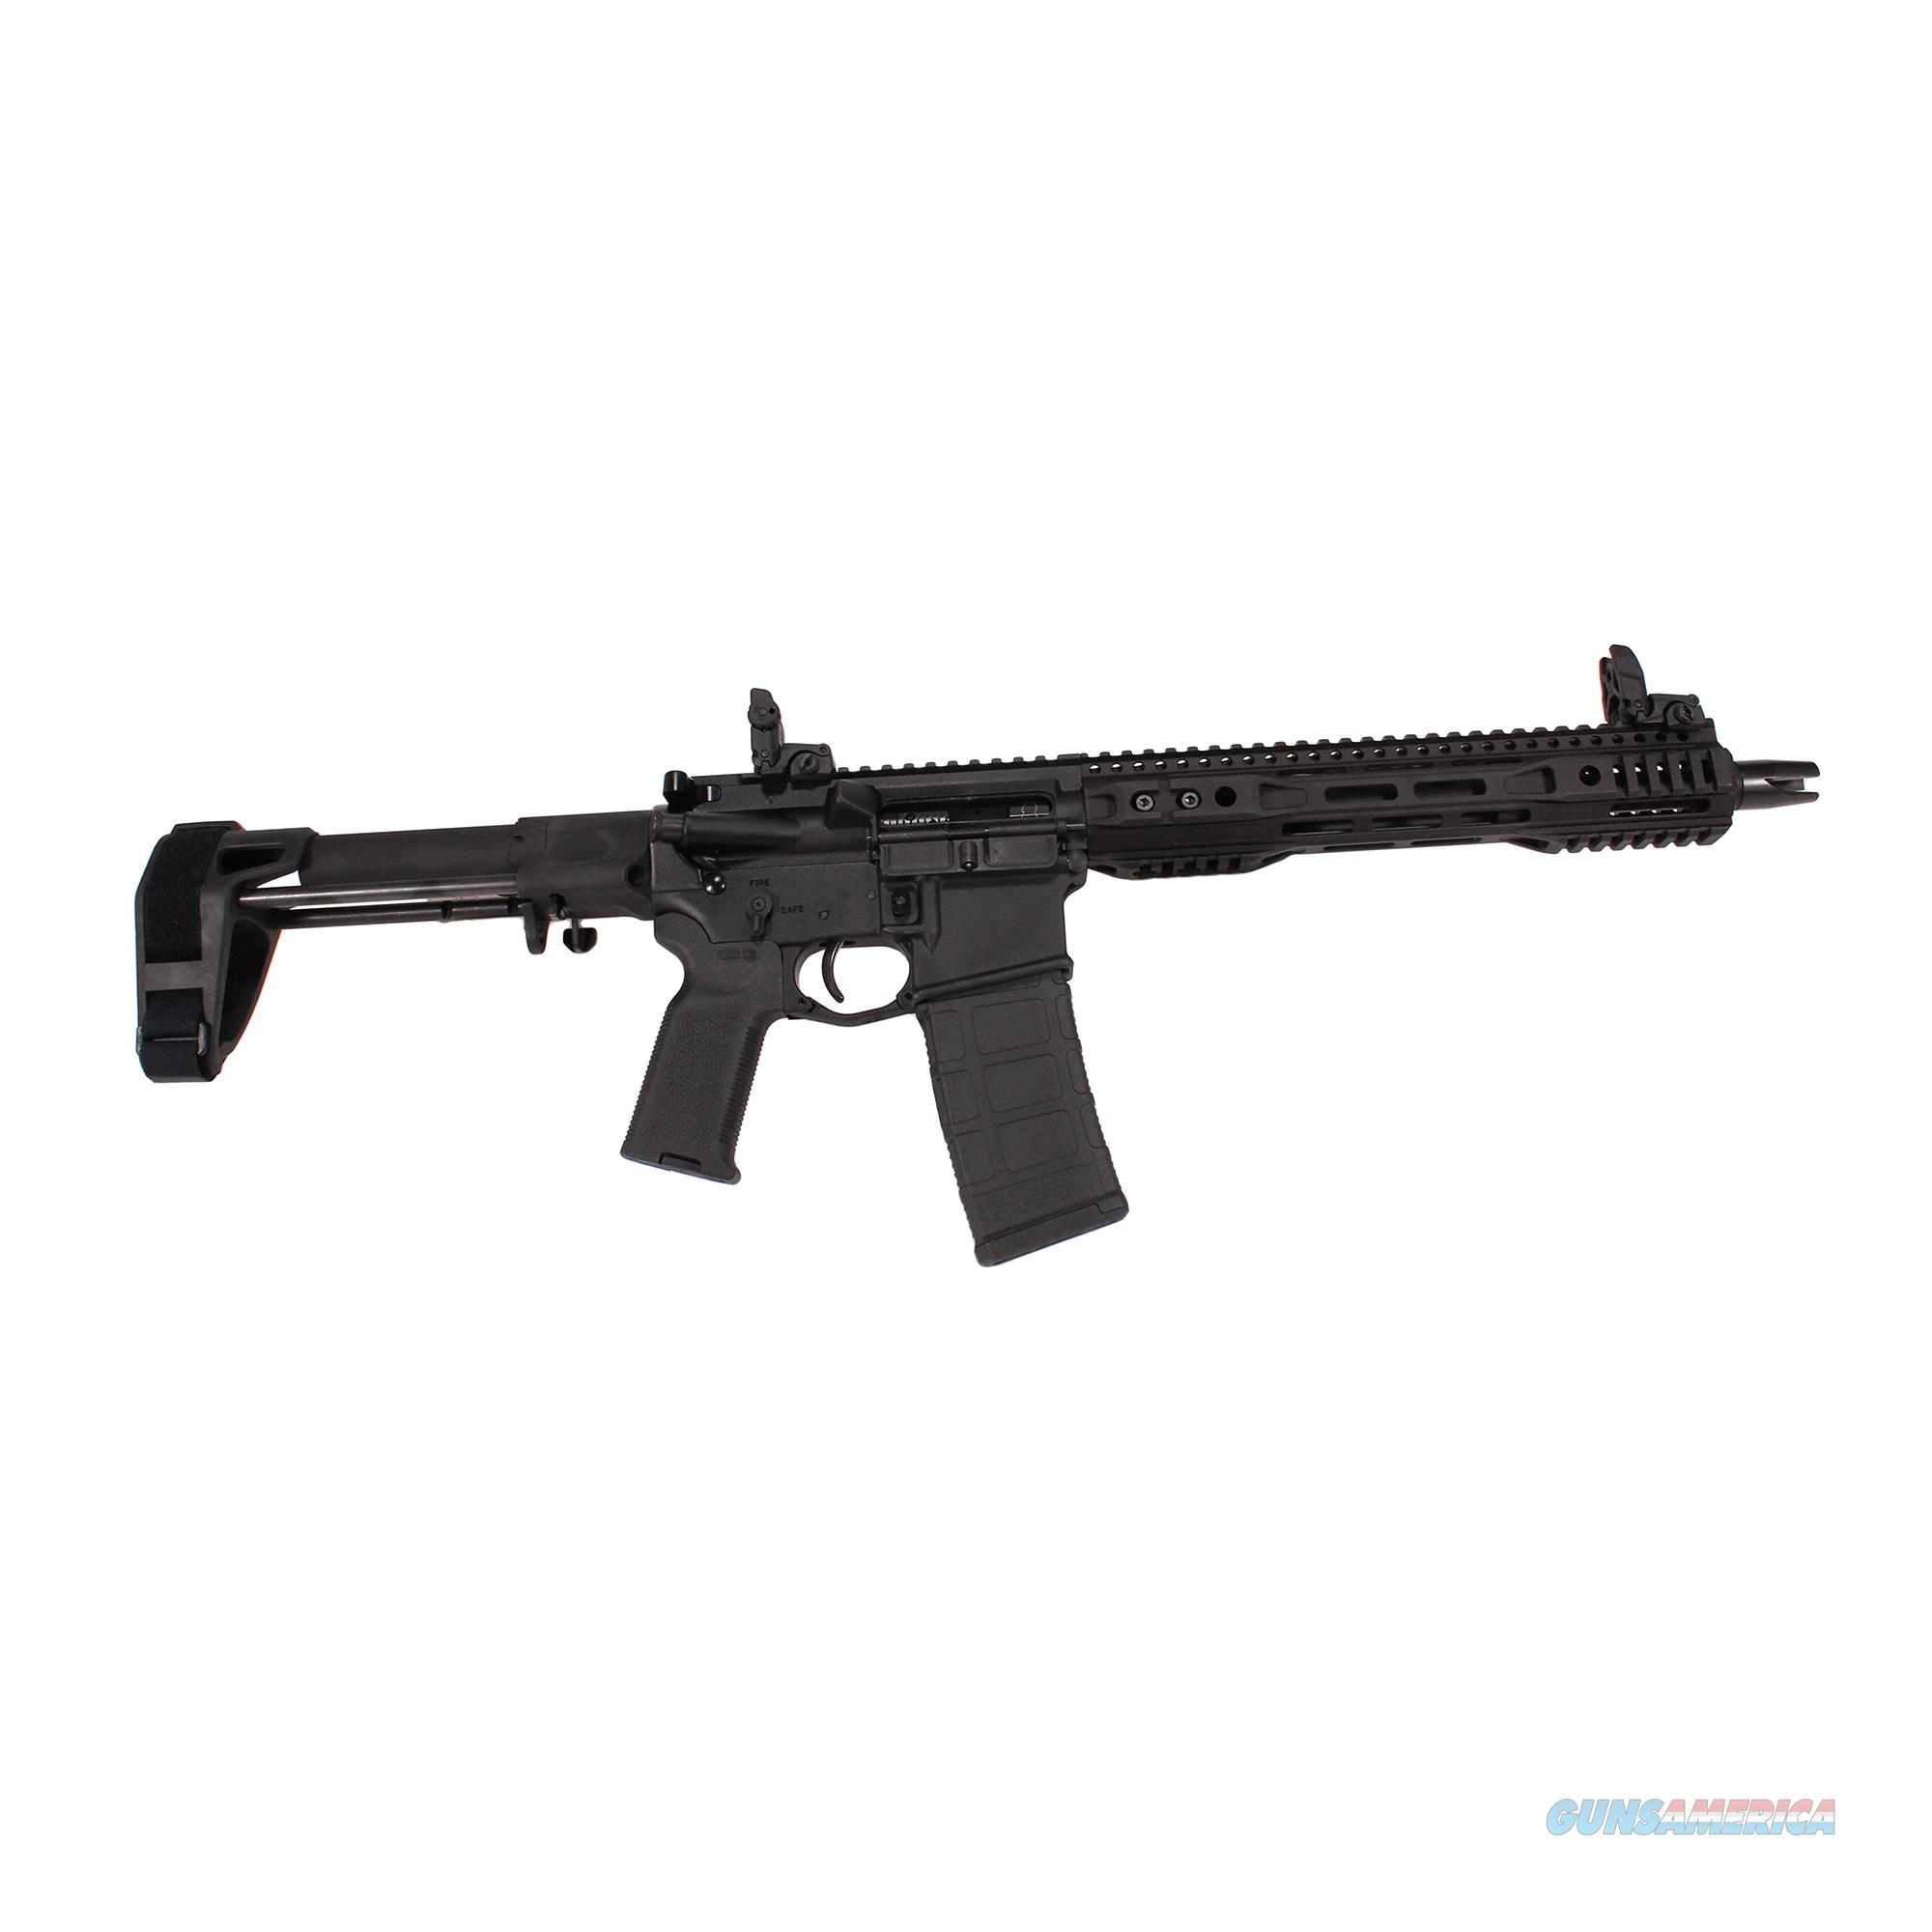 Franklin Armory Bfsiii Pdw C11 Pistol, 5.56Mm N... For Sale